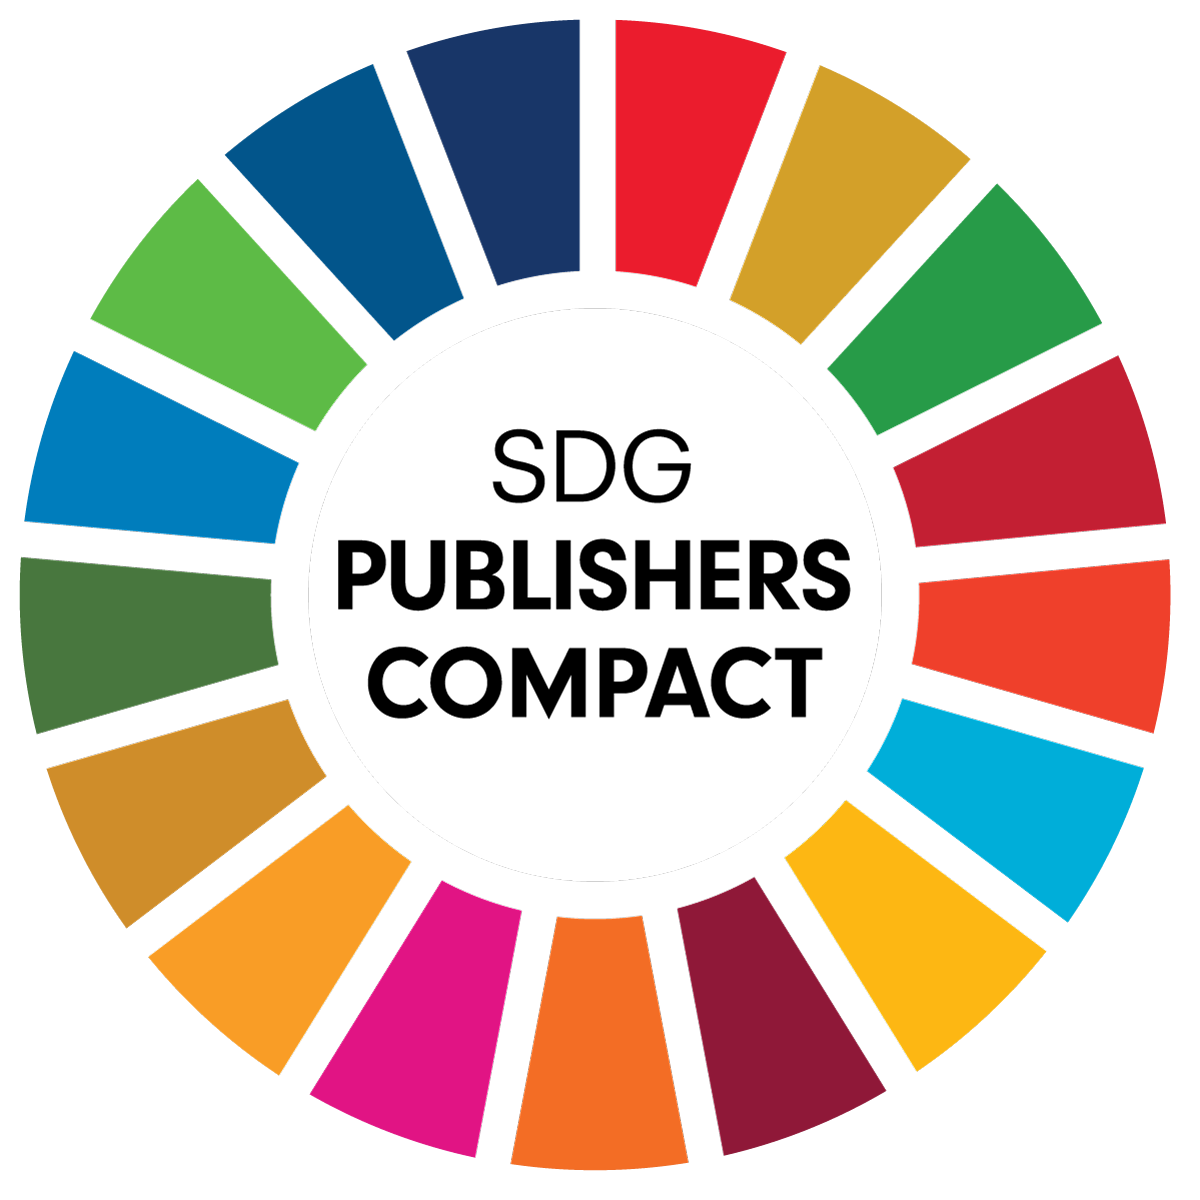 Bristol University Press becomes a signatory to the UN SDG Publishers Compact